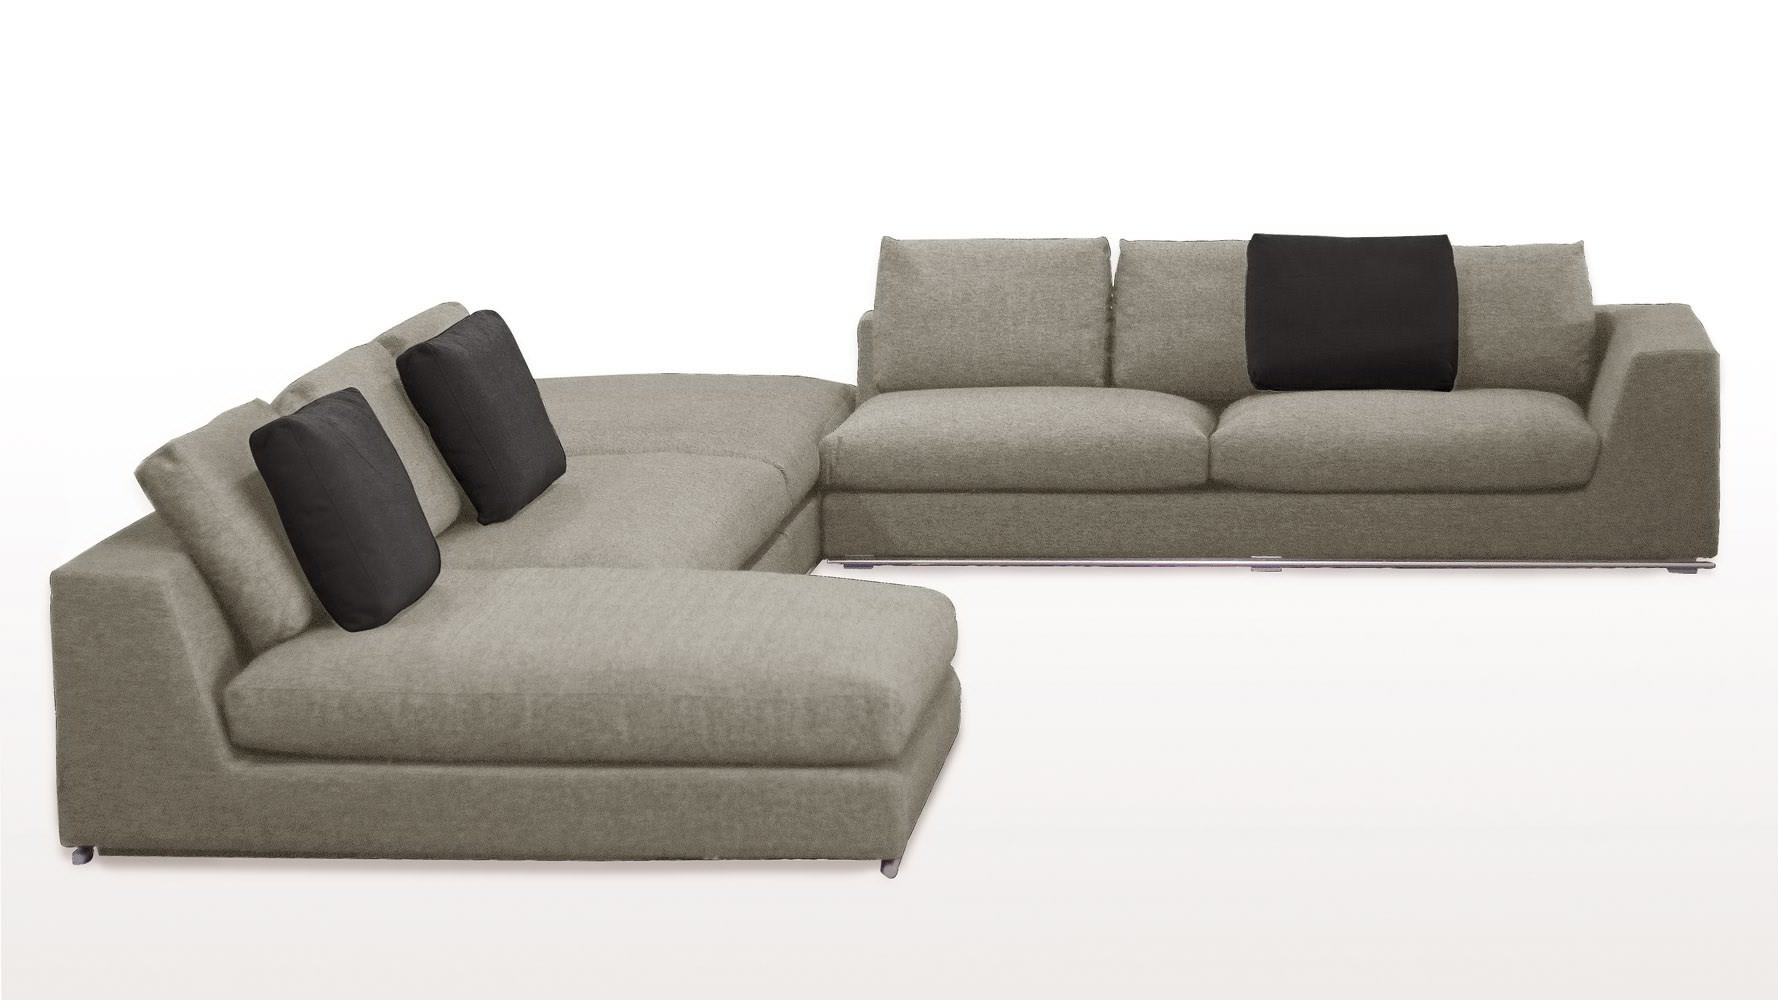 Armless Sectional Sofas Hereo Sofa Pertaining To Armless Sectional Sofas (#6 of 12)